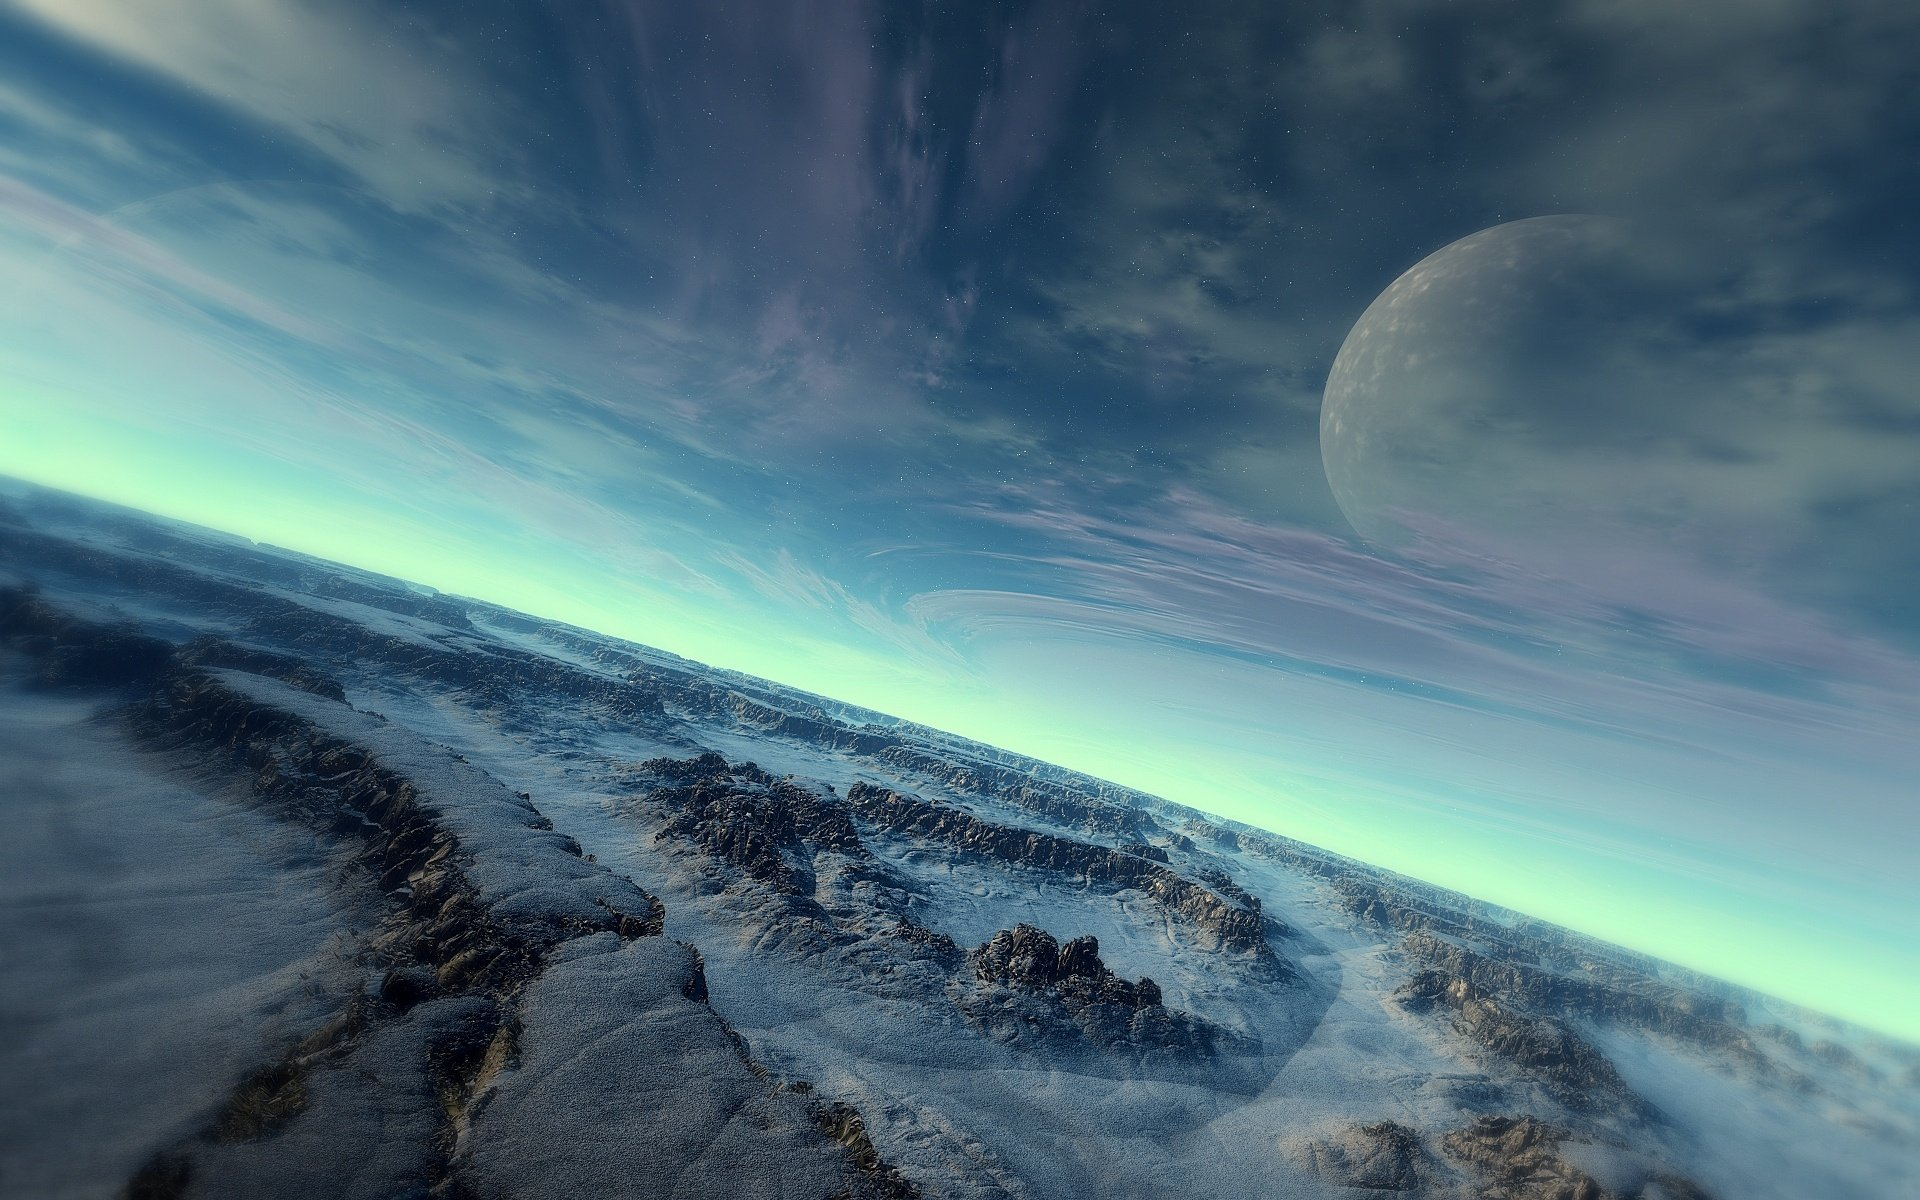 Wallpaper science fiction planet landscape wallpapersafari for Space landscape